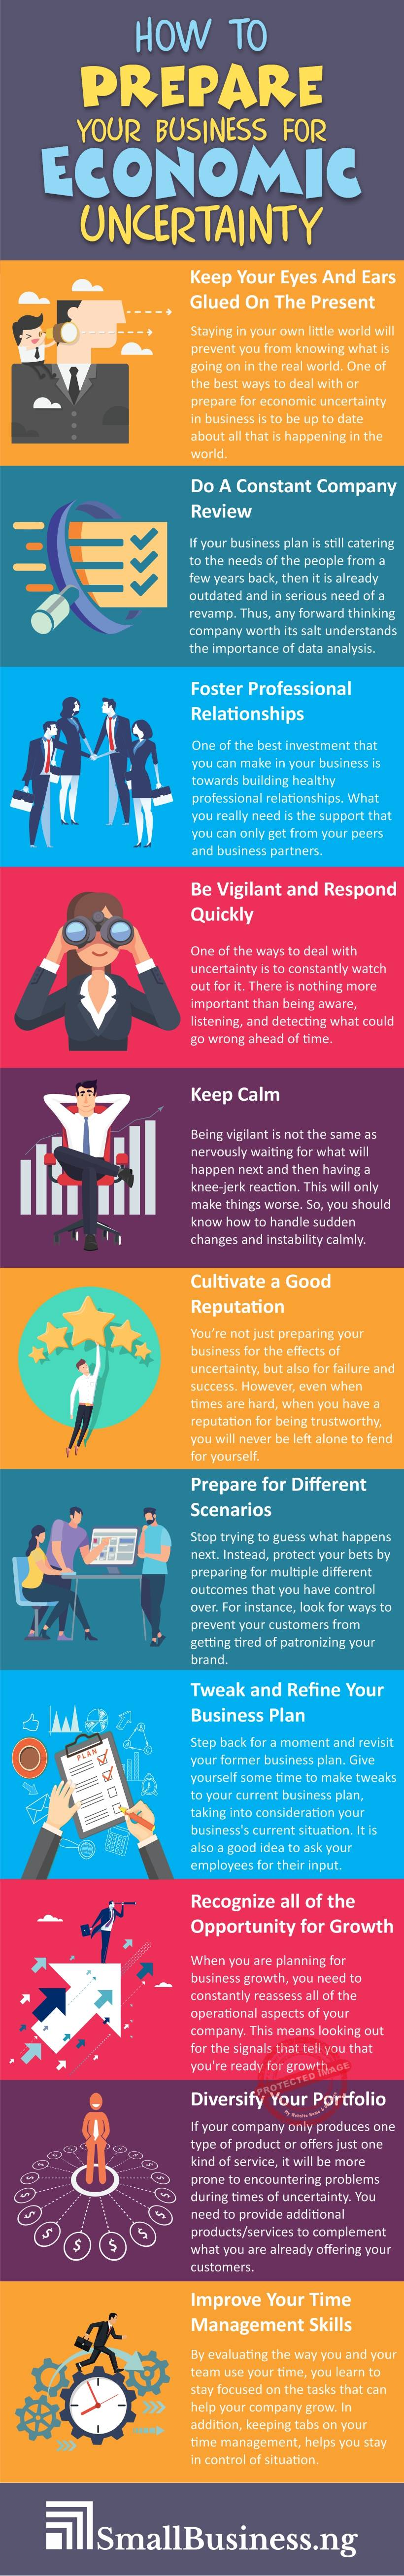 How To Prepare Your Business For Economic Uncertainty Infographic